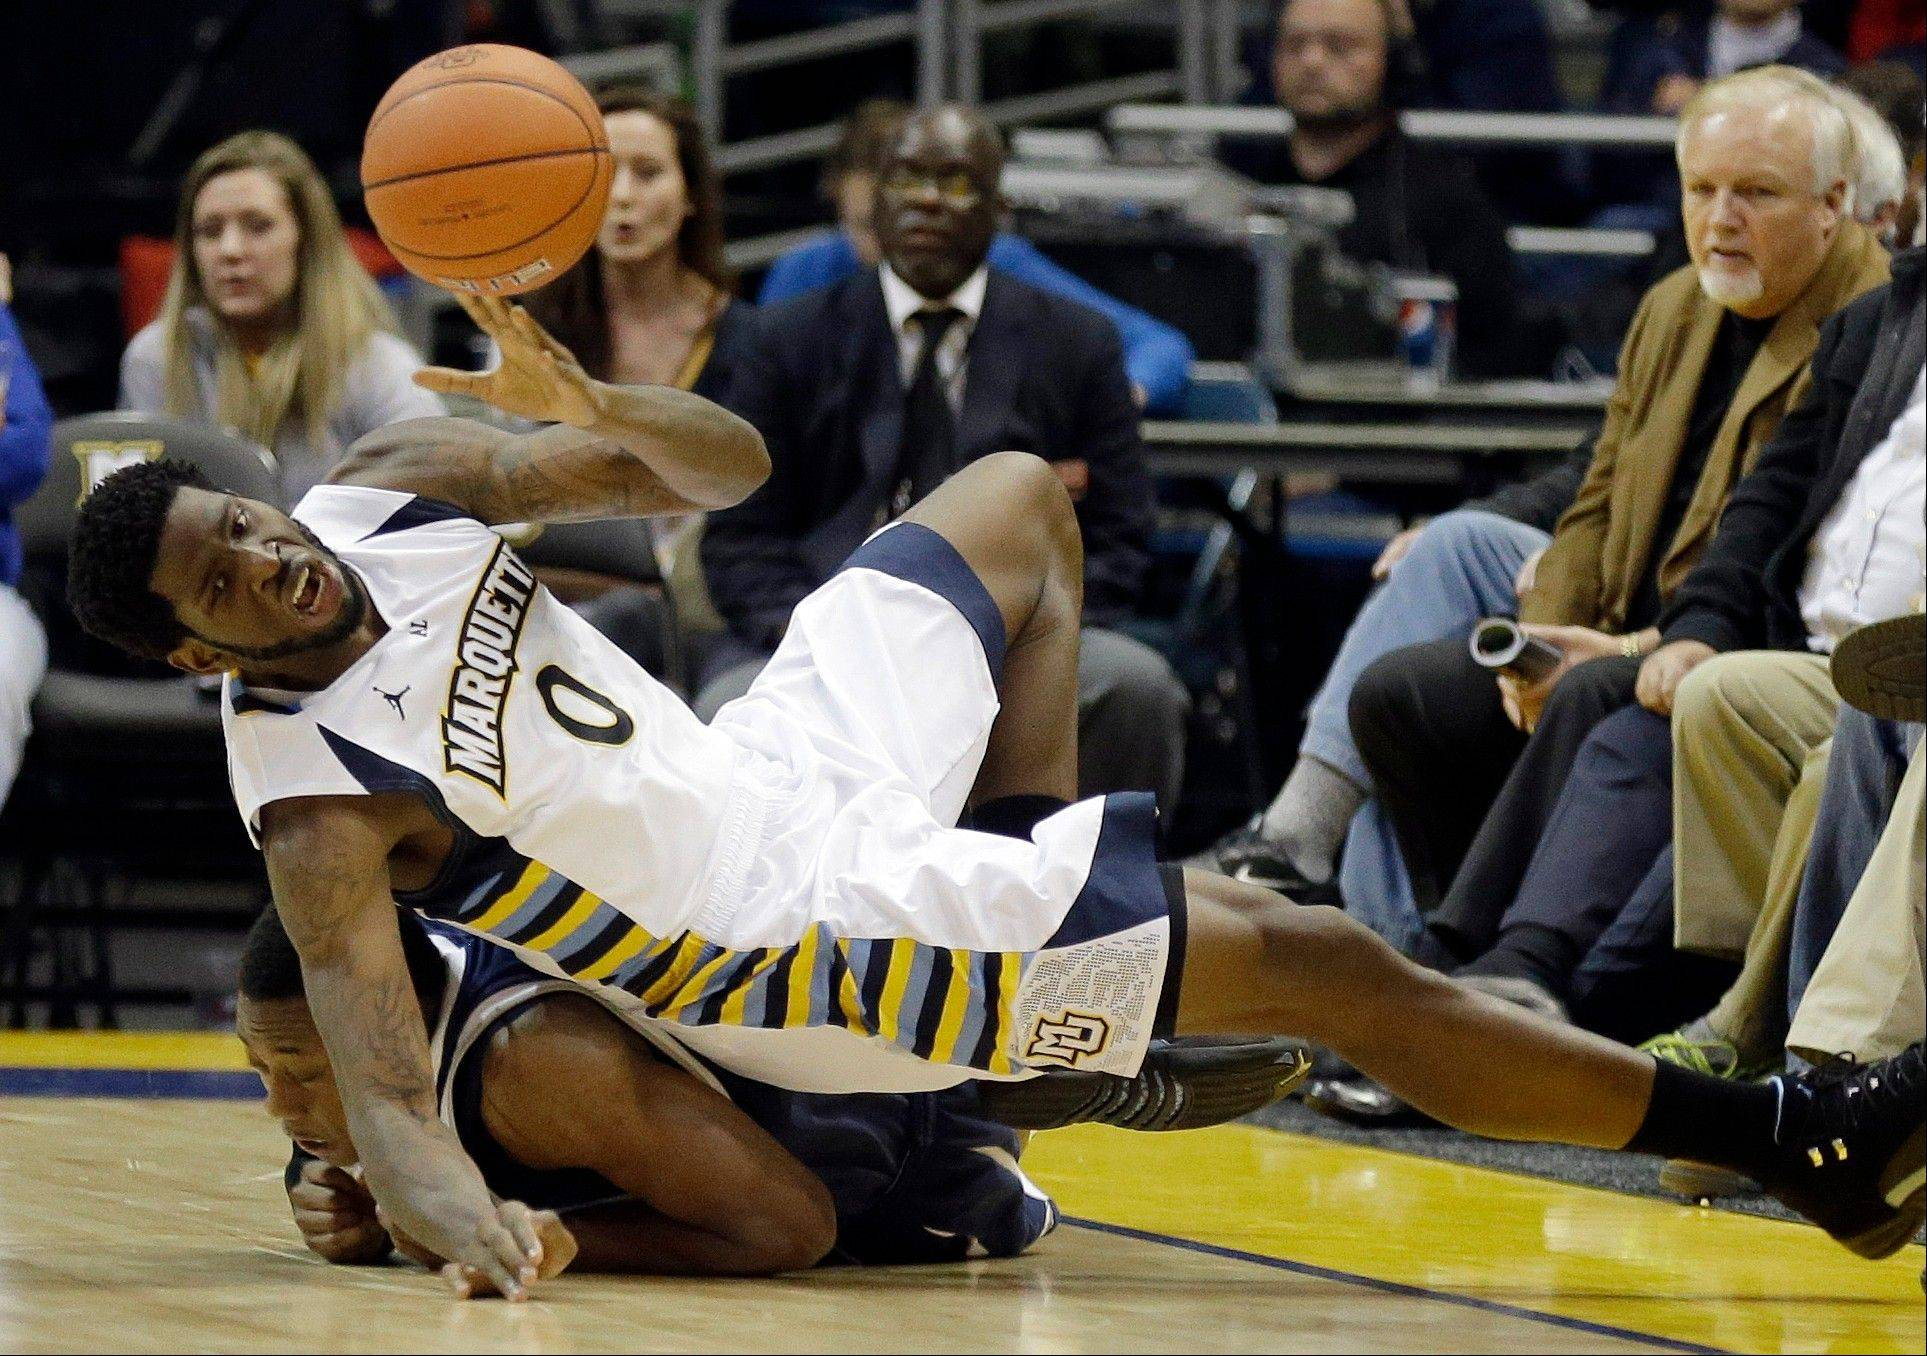 Marquette's Jamil Wilson dives over New Hampshire's Jacoby Armstrong for a loose ball during the second half of Thursday's game in Milwaukee.